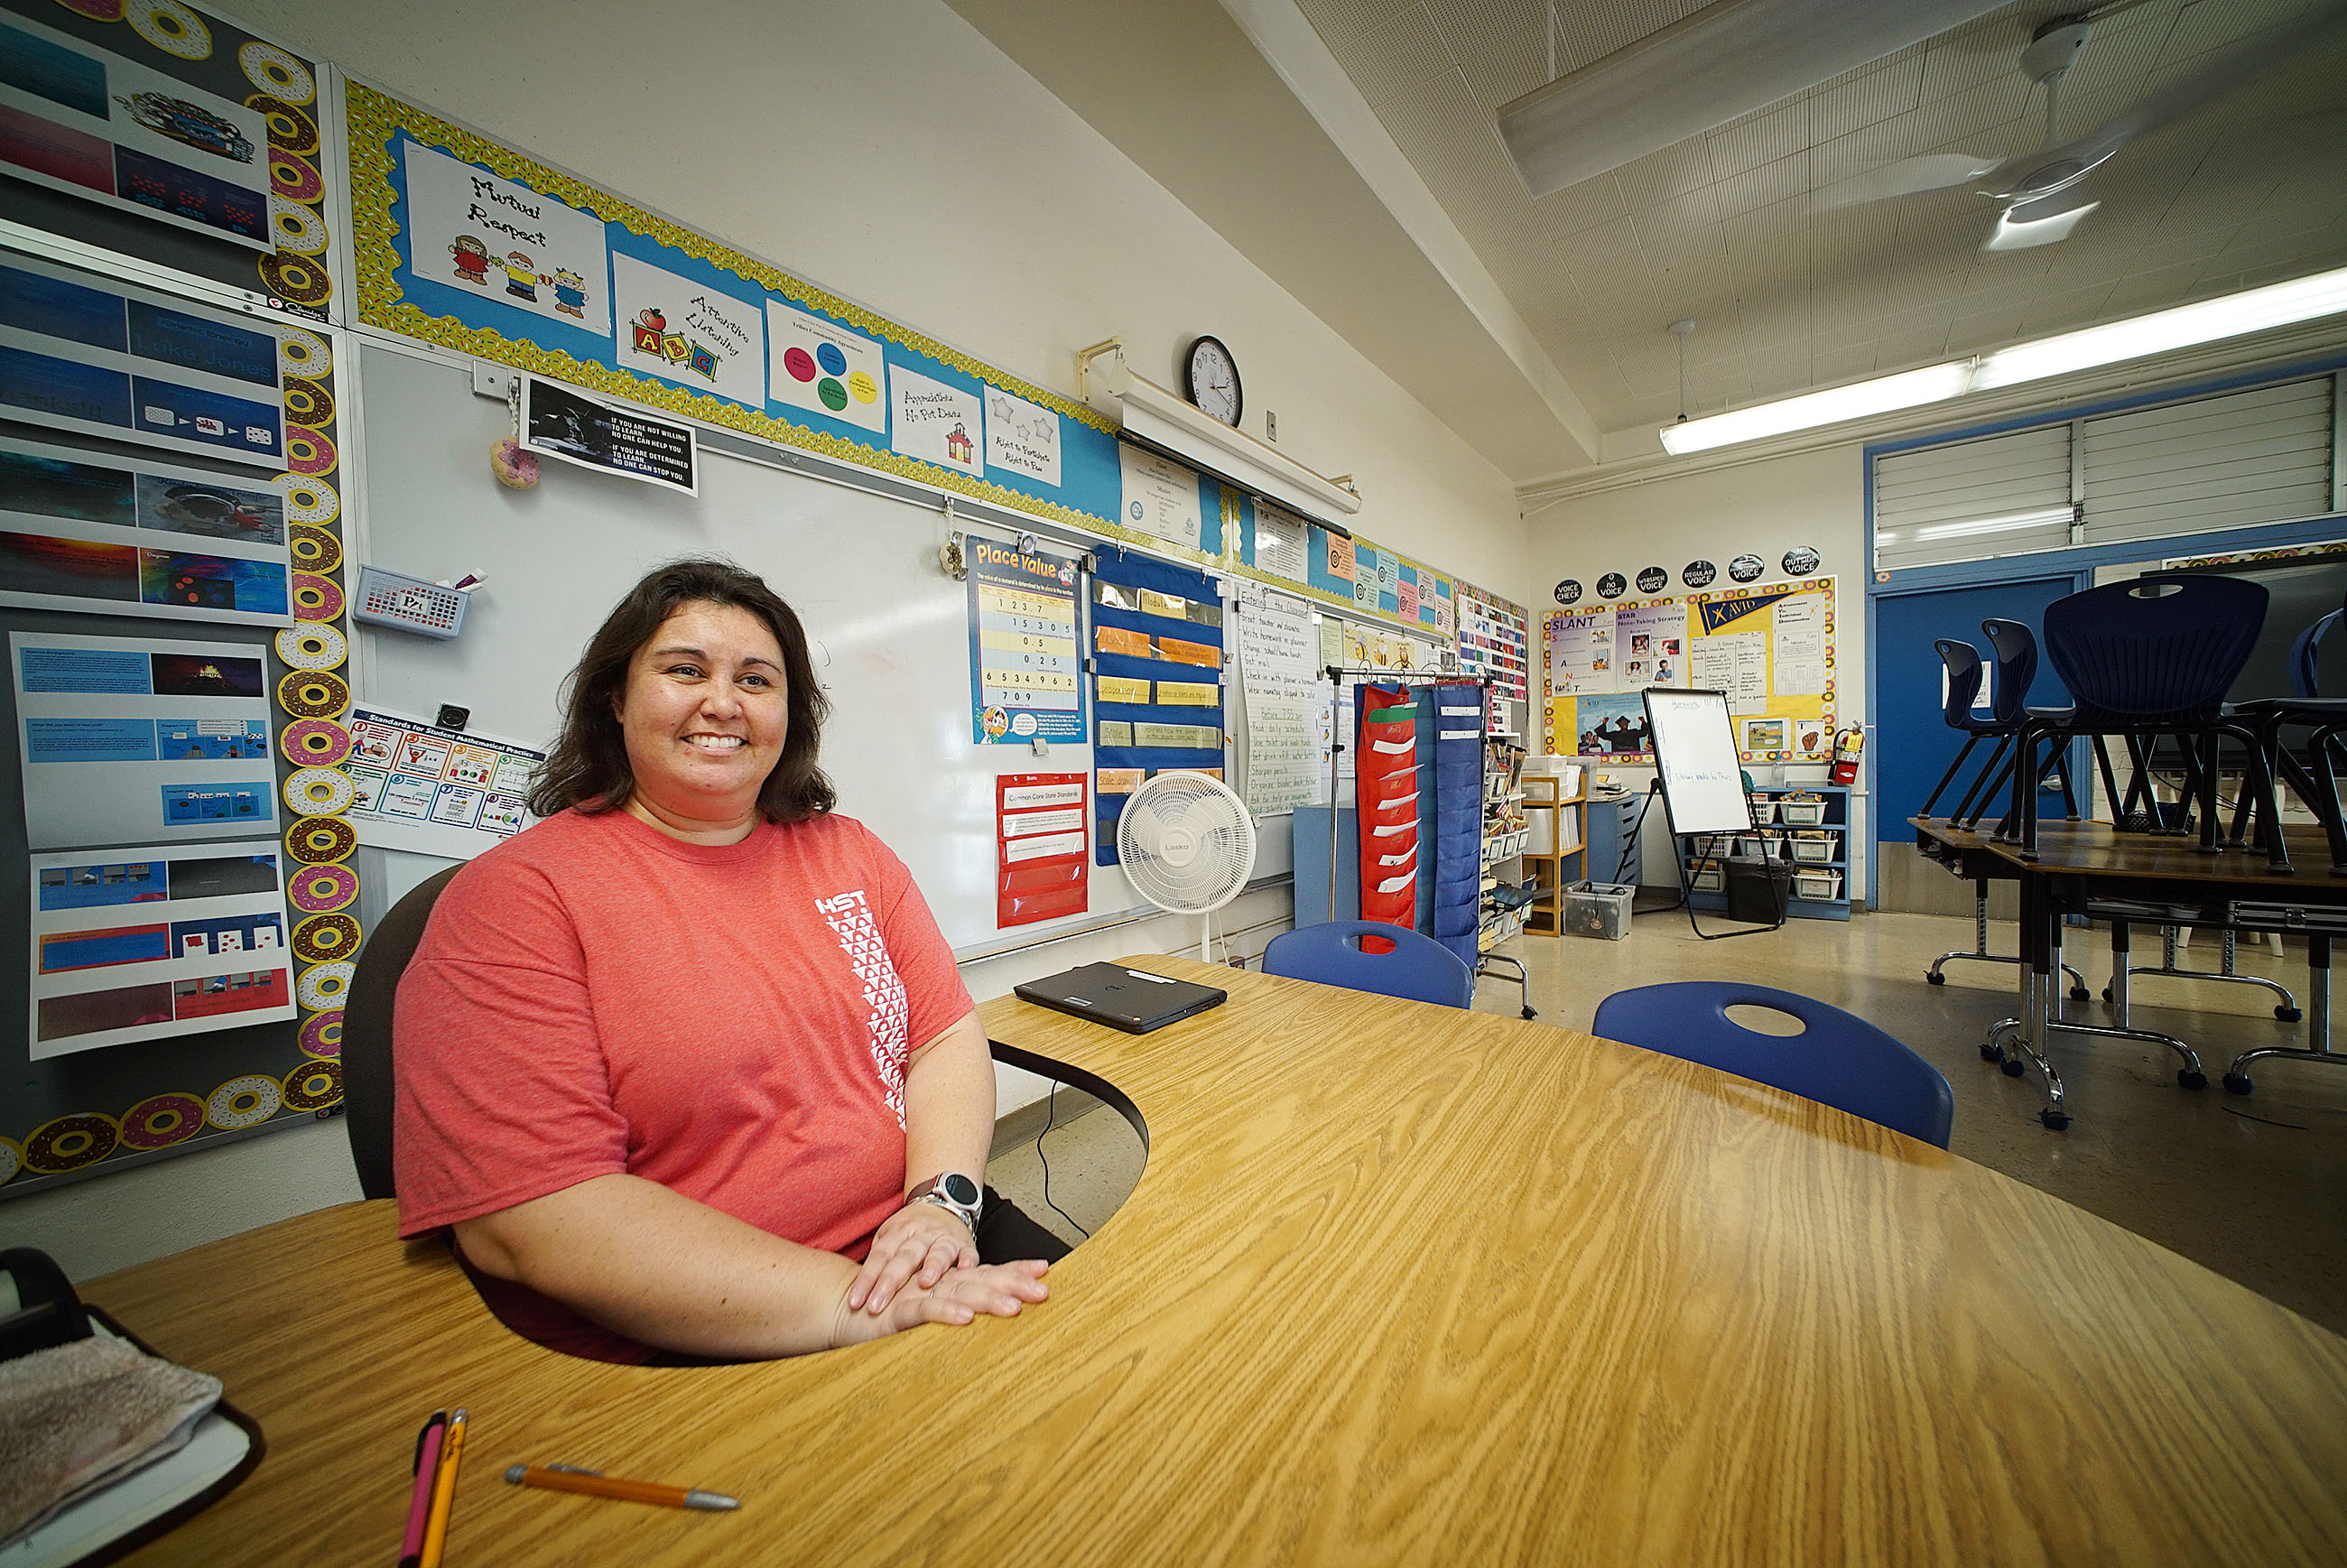 Pearl Harbor Kai Elementary 6th grade teacher Leilani Frazier in her classroom after school.